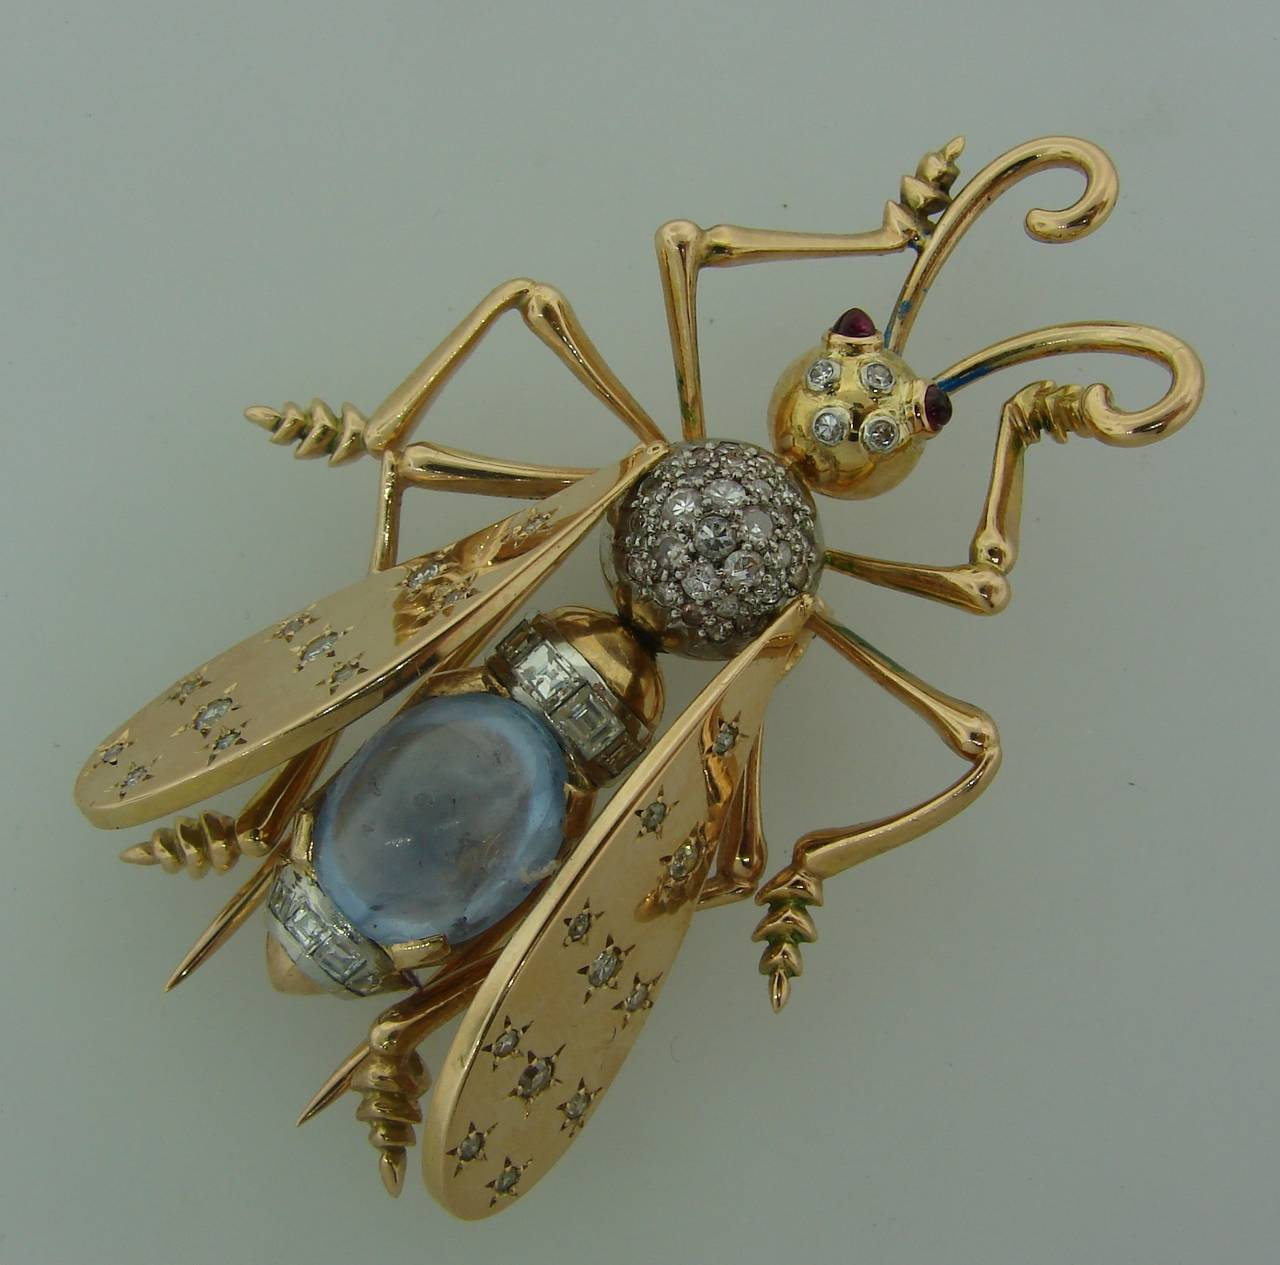 The cutest fly pin! Definitely a conversational piece and will accentuate your extravagant personality!